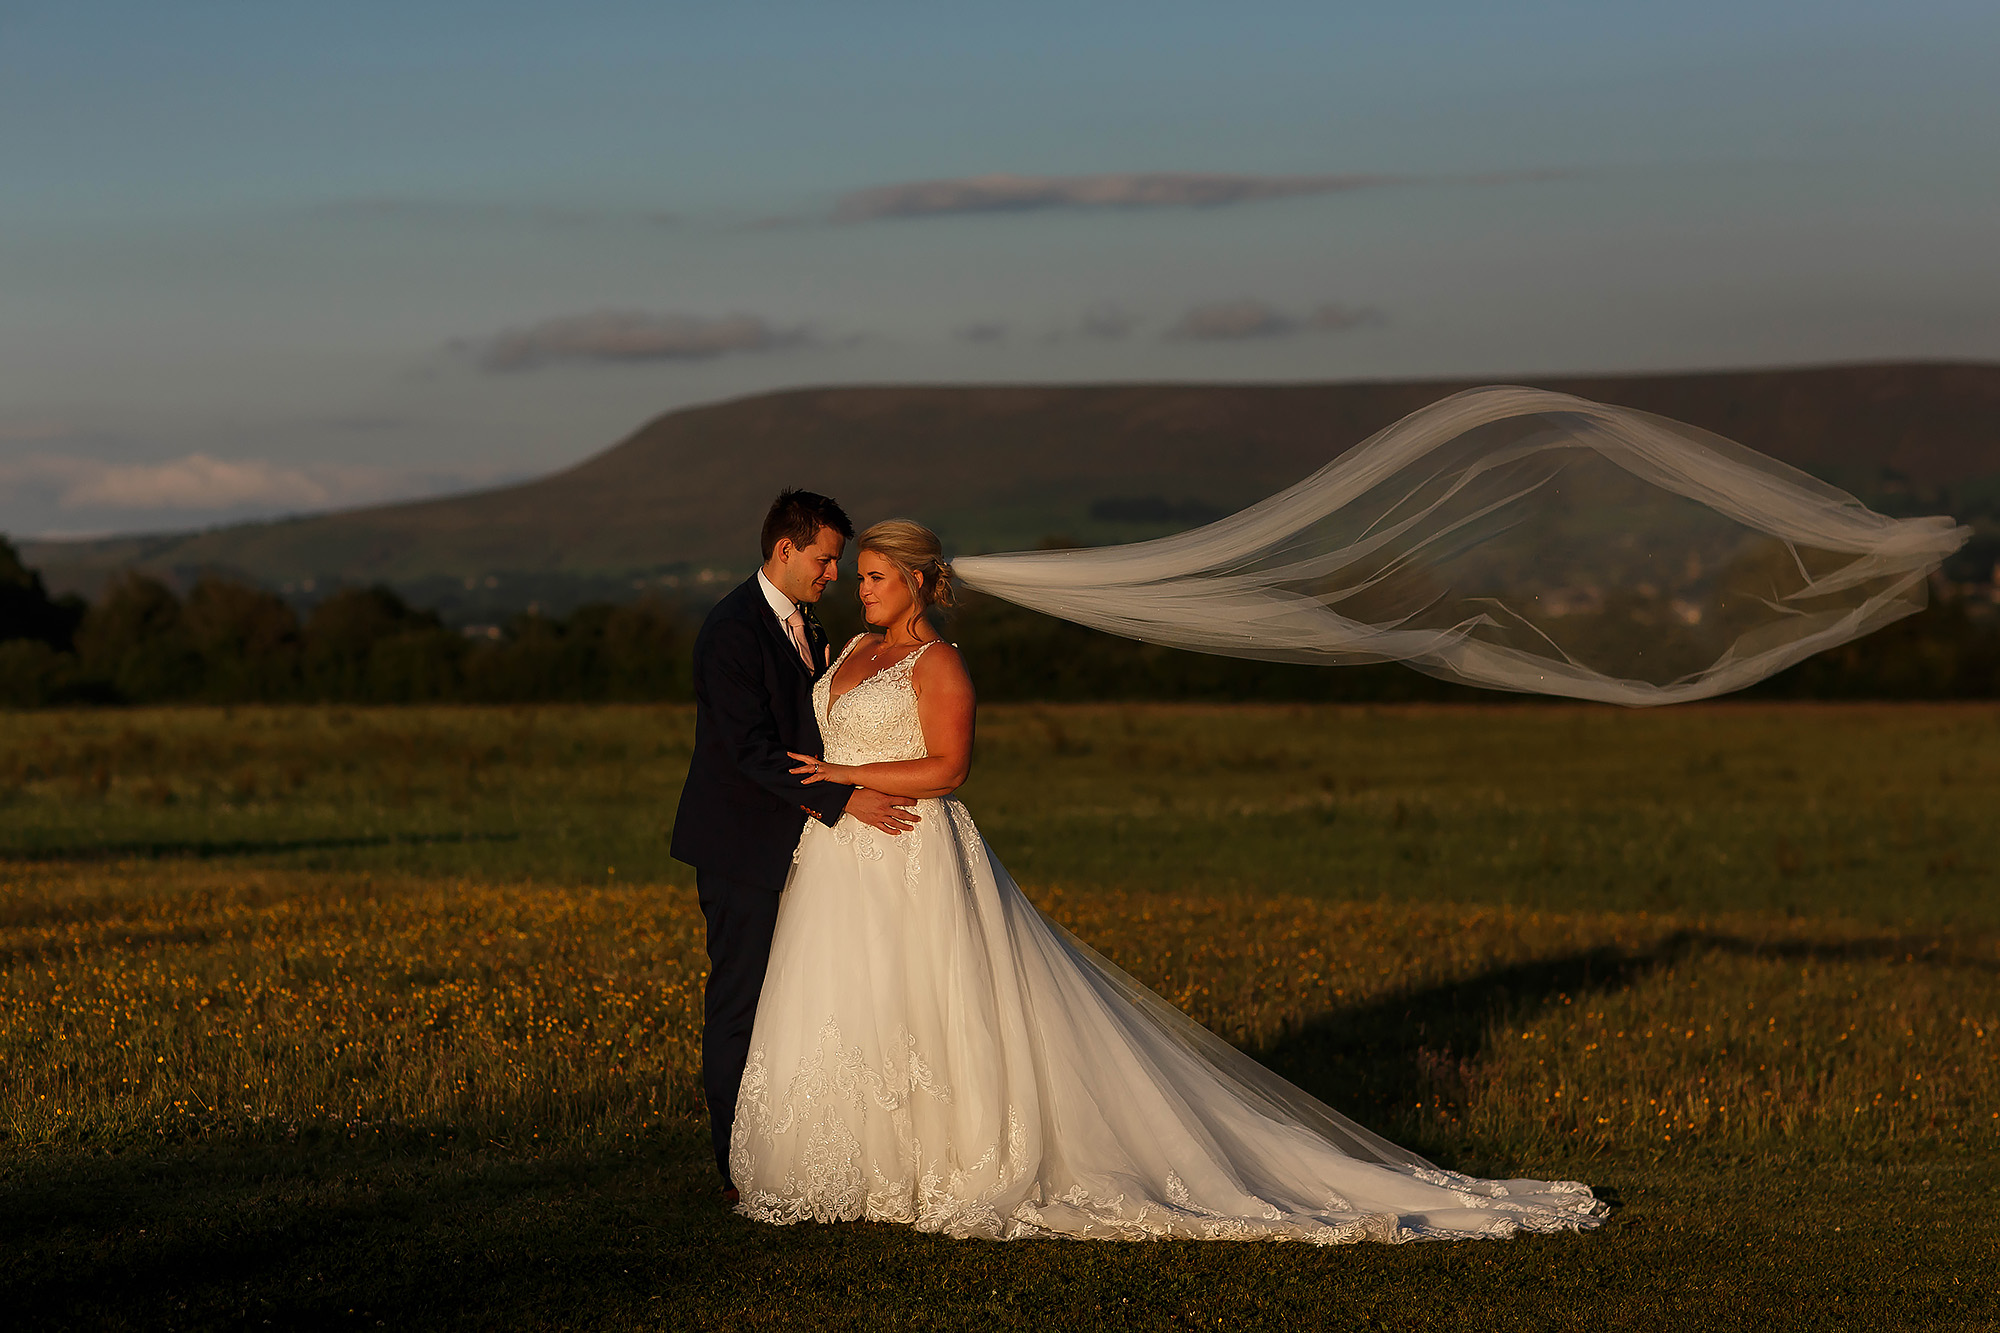 bride and groom in a field with the long veil flowing behind